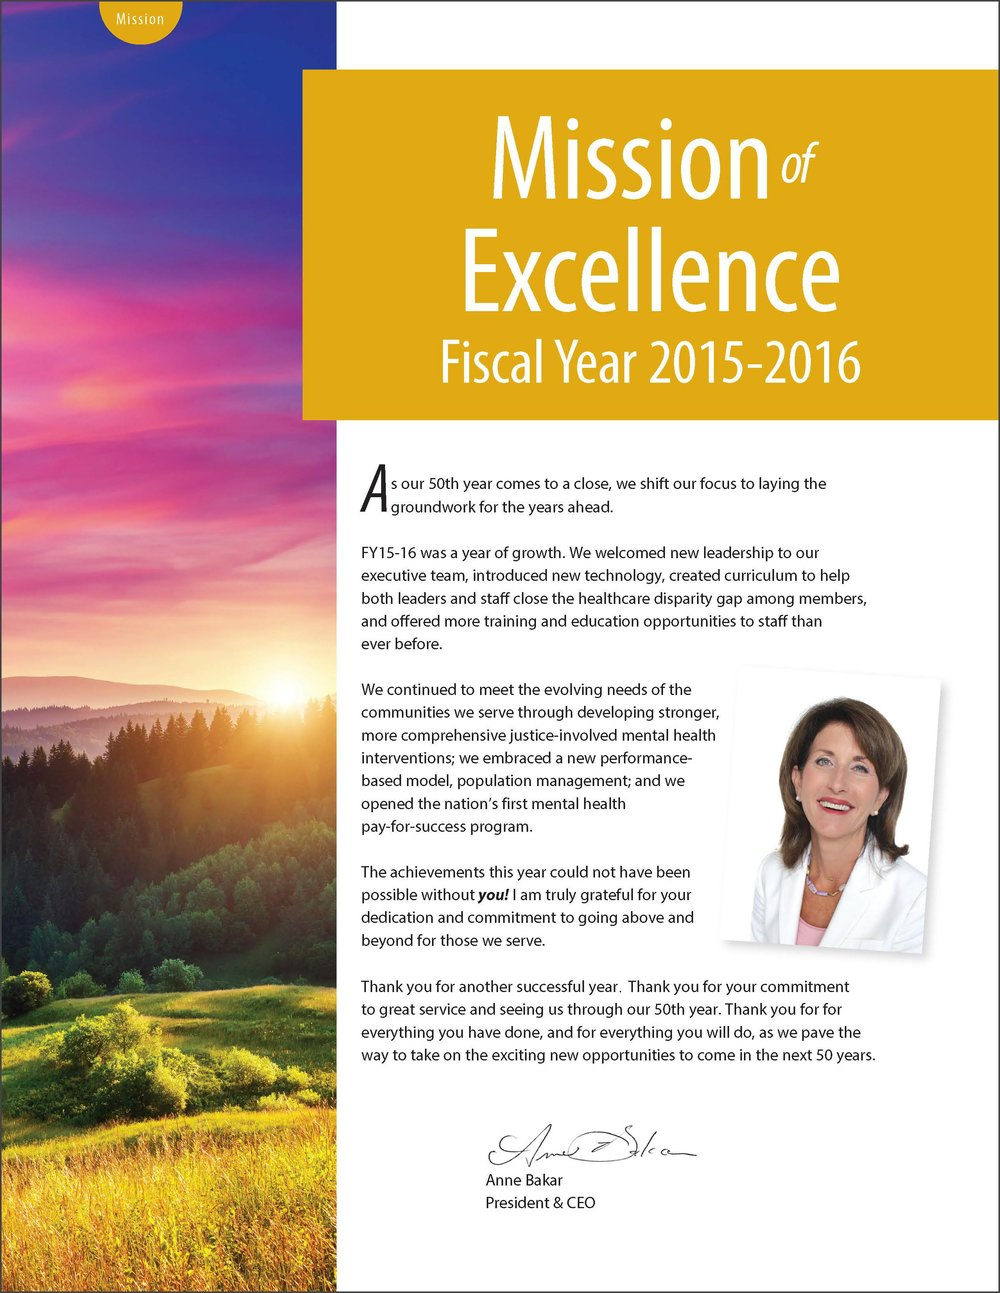 Mission of Excellence_FY15-16_thumb_Page_1.jpg